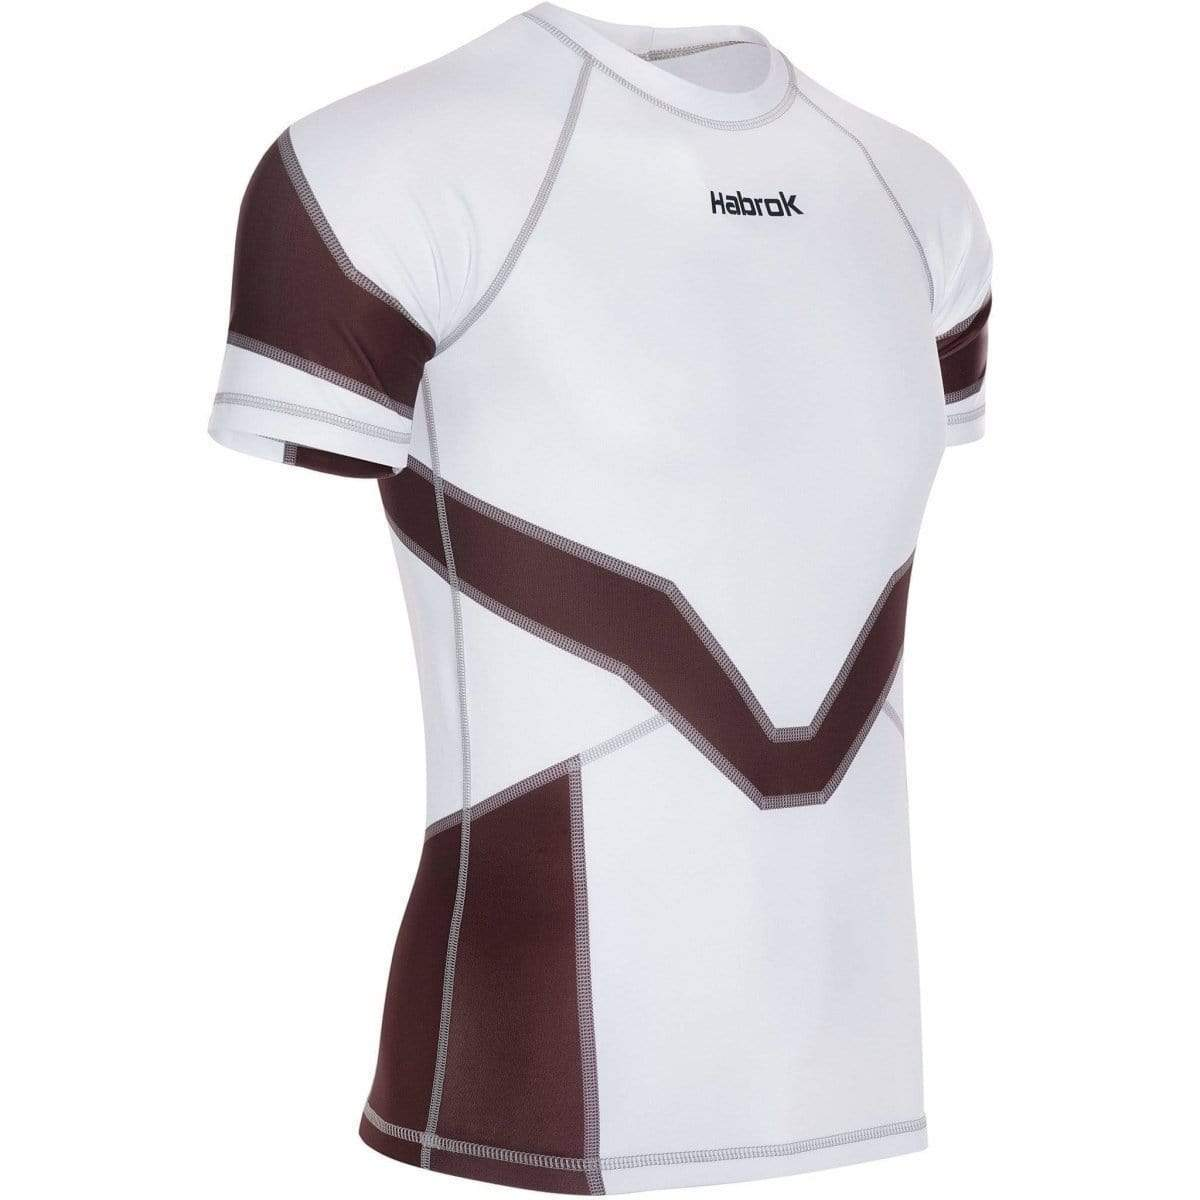 Habrok Rash Guard XS / BROWN Transform 2.0 | Ranked Rash Guard Women | Half Sleeve